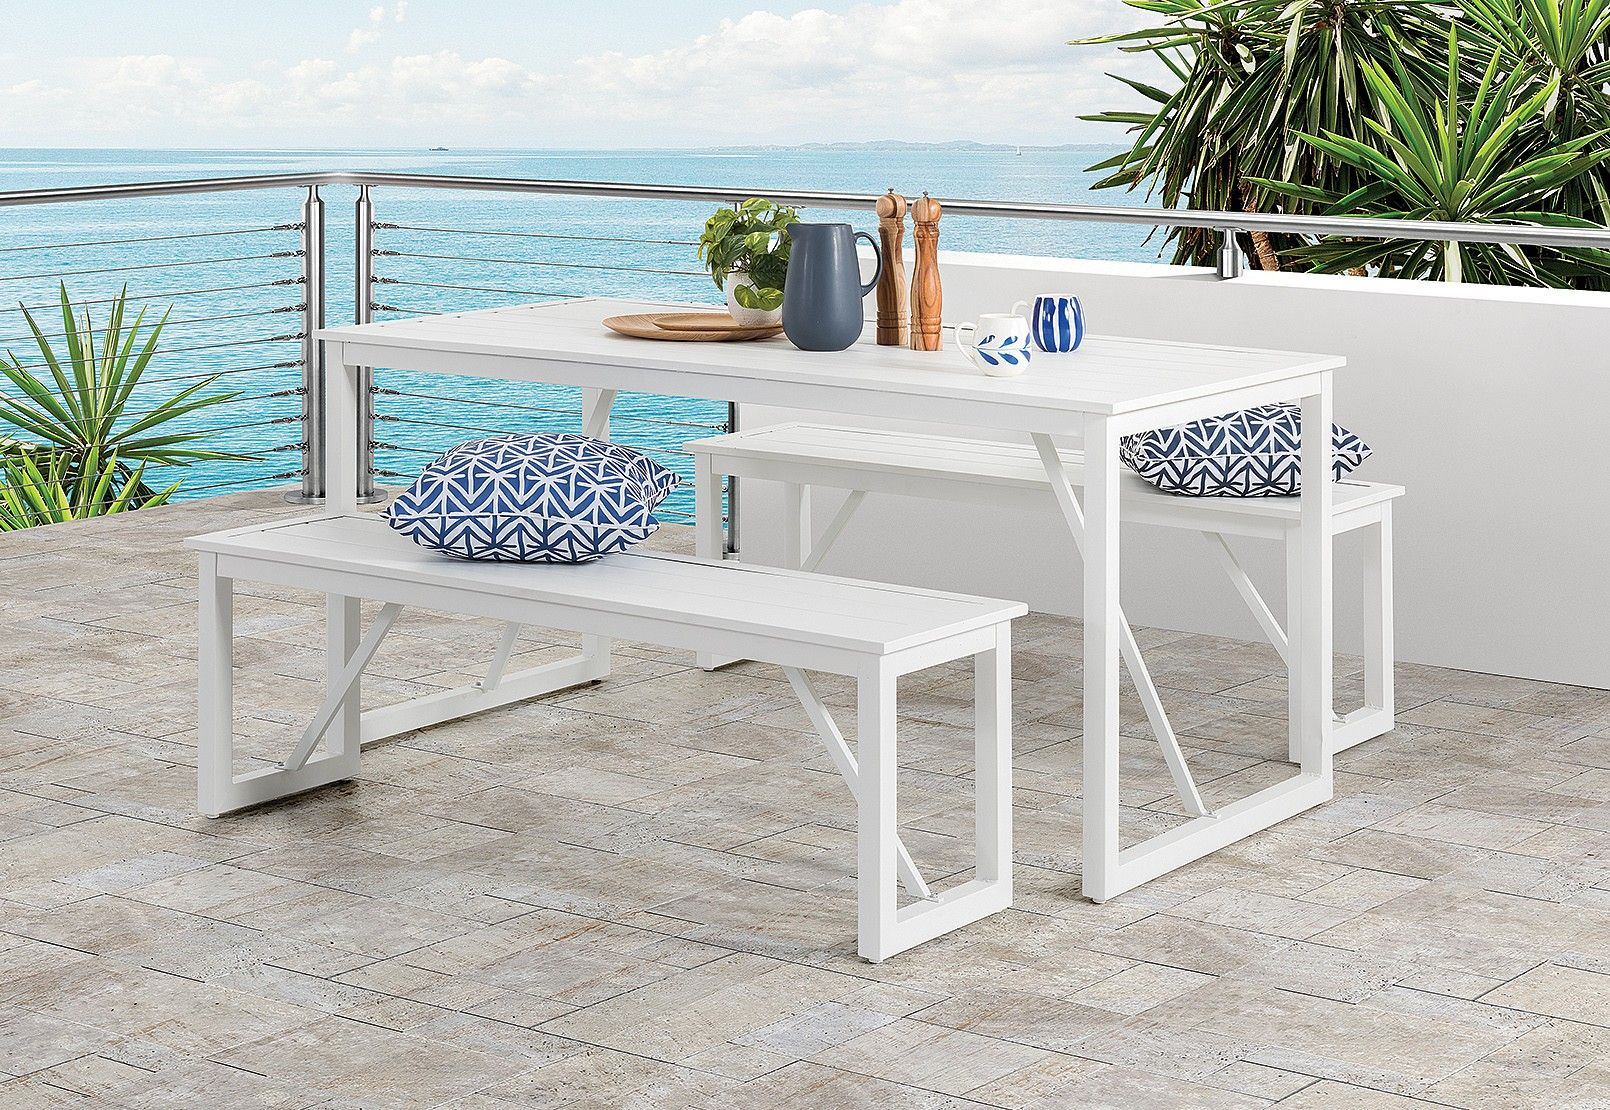 Pin By Hiari Afrika On Holiday House Plans Dining Set With Bench Outdoor Dining Furniture Furniture